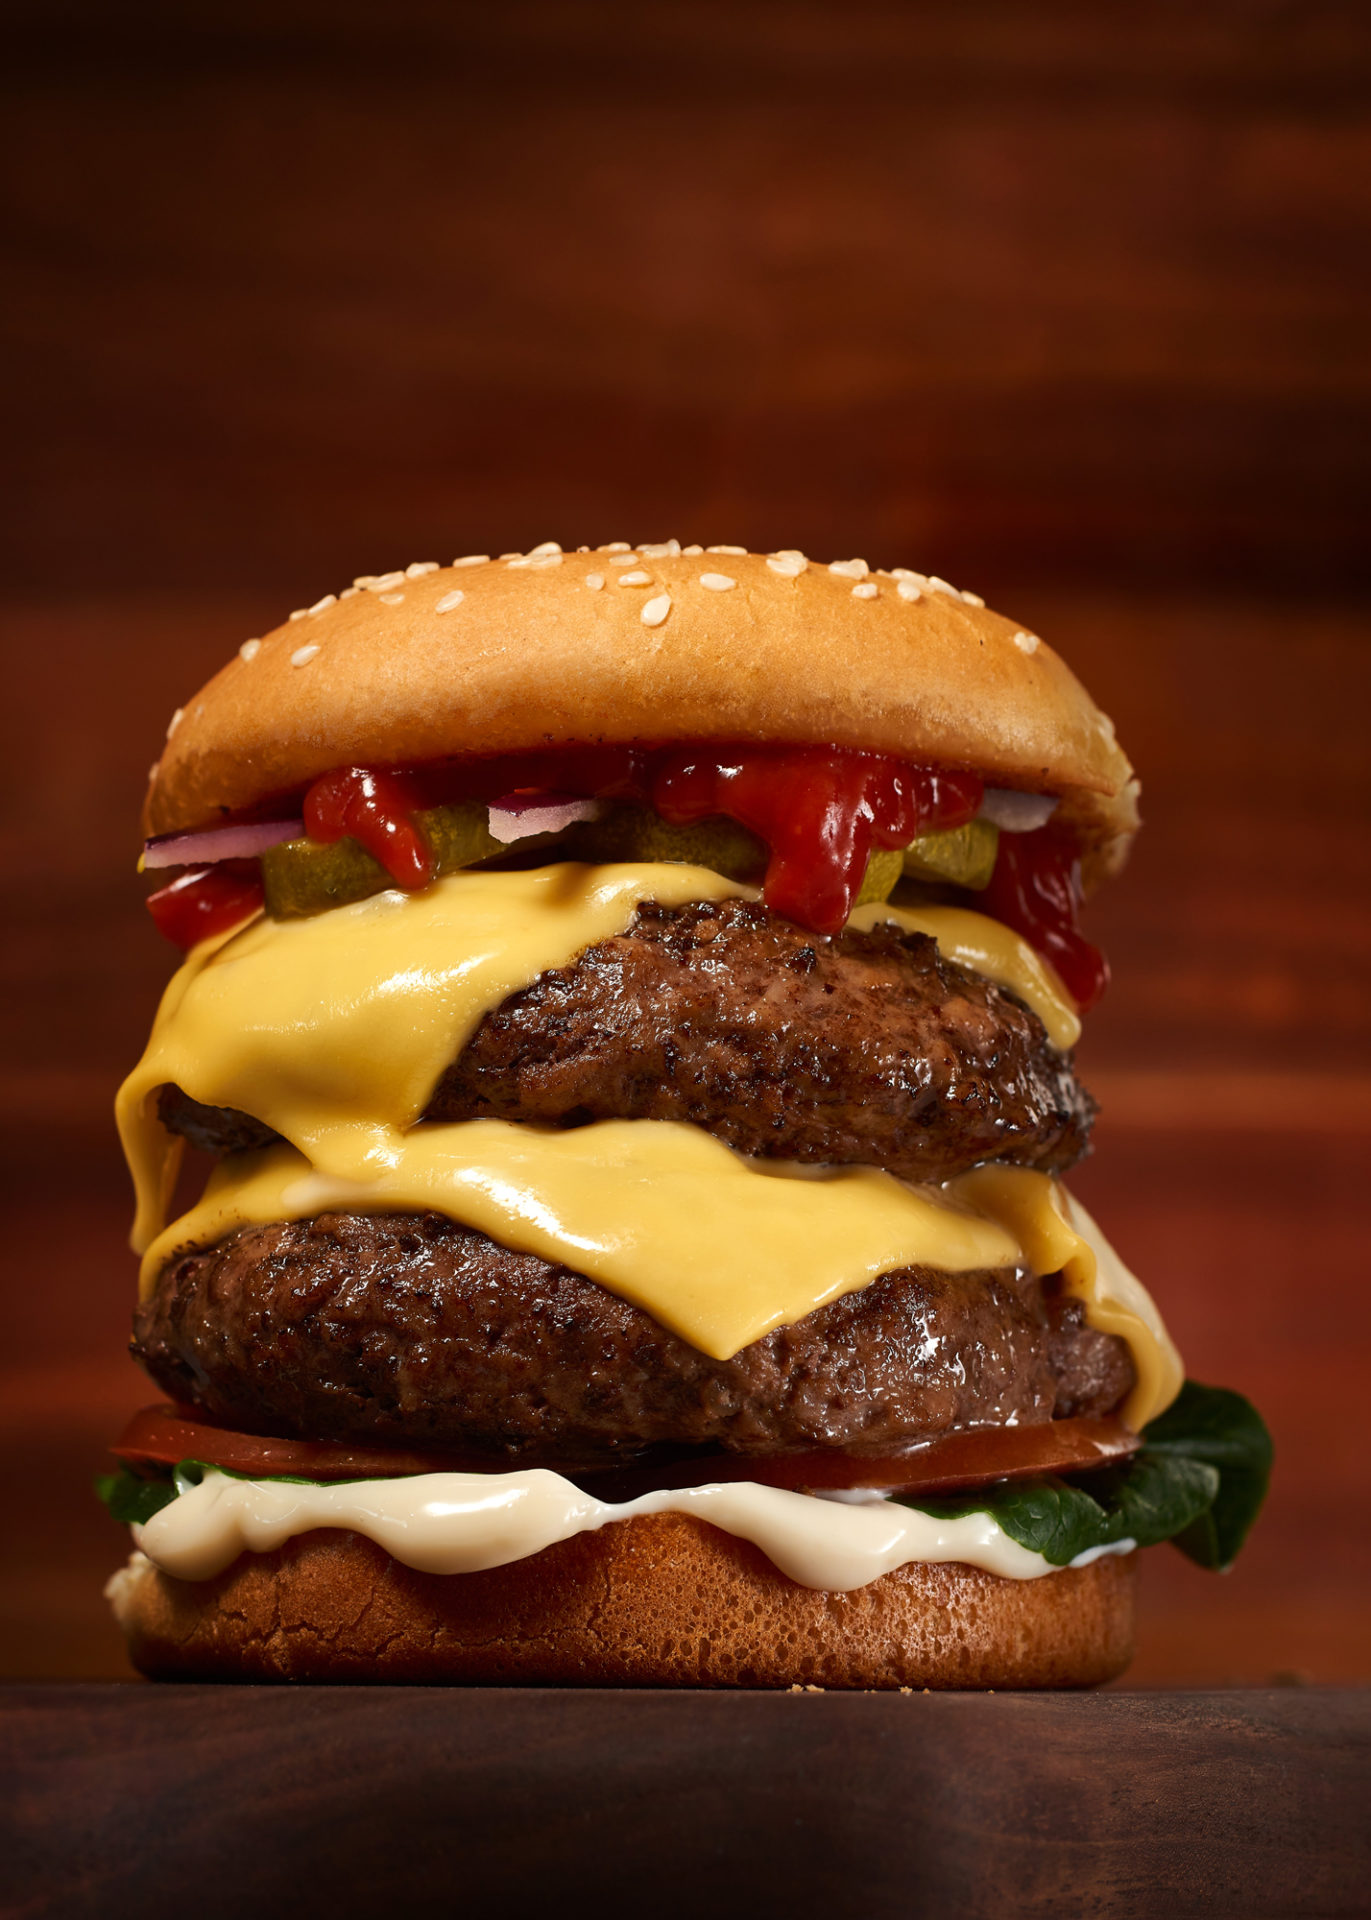 Restaurant Food Photographer - by Hollis Conway Photography